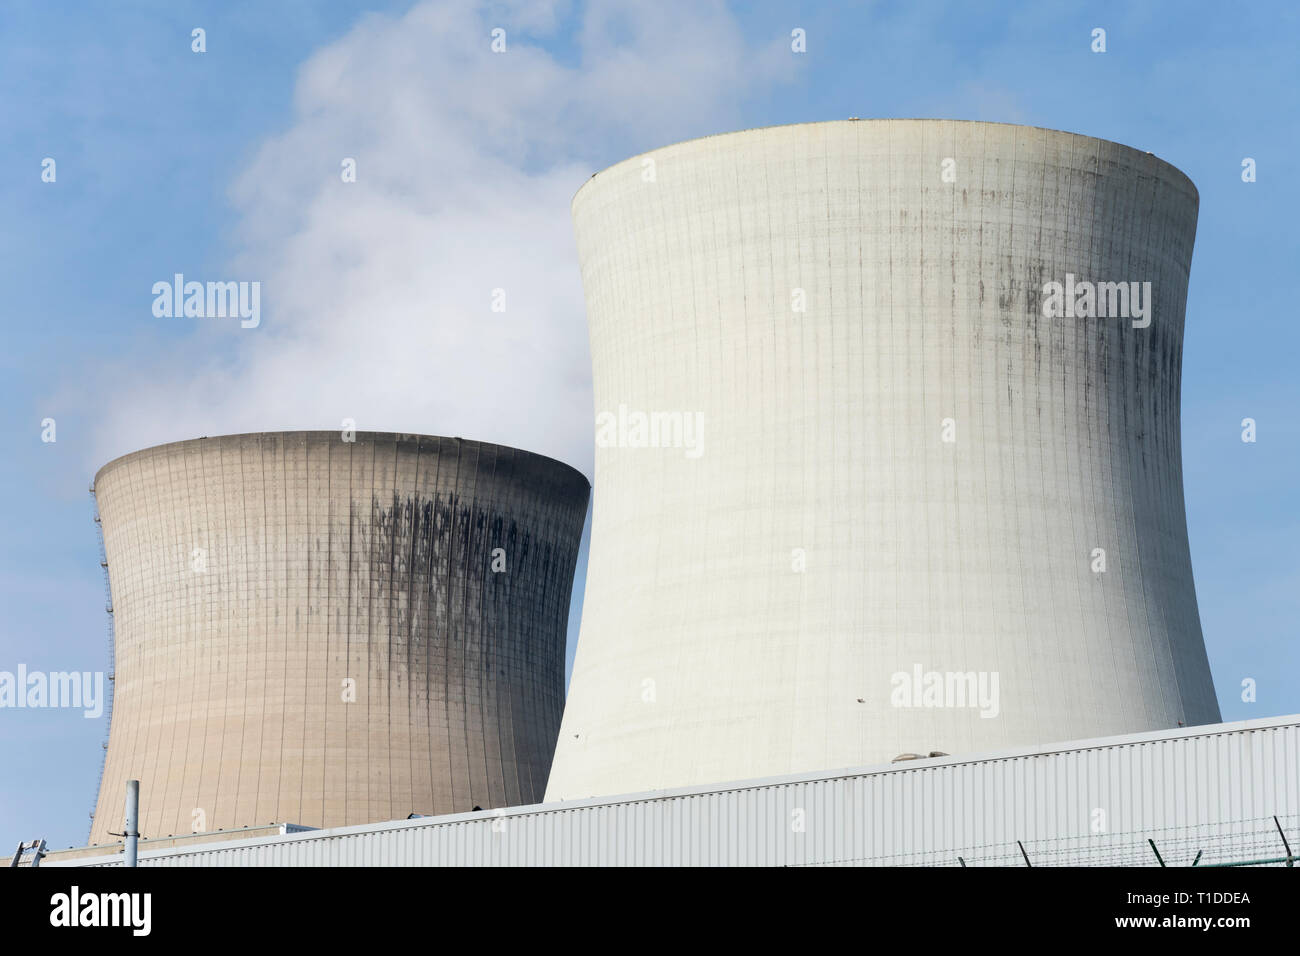 Close up of two cooling towers of the nuclear reactor - Stock Image